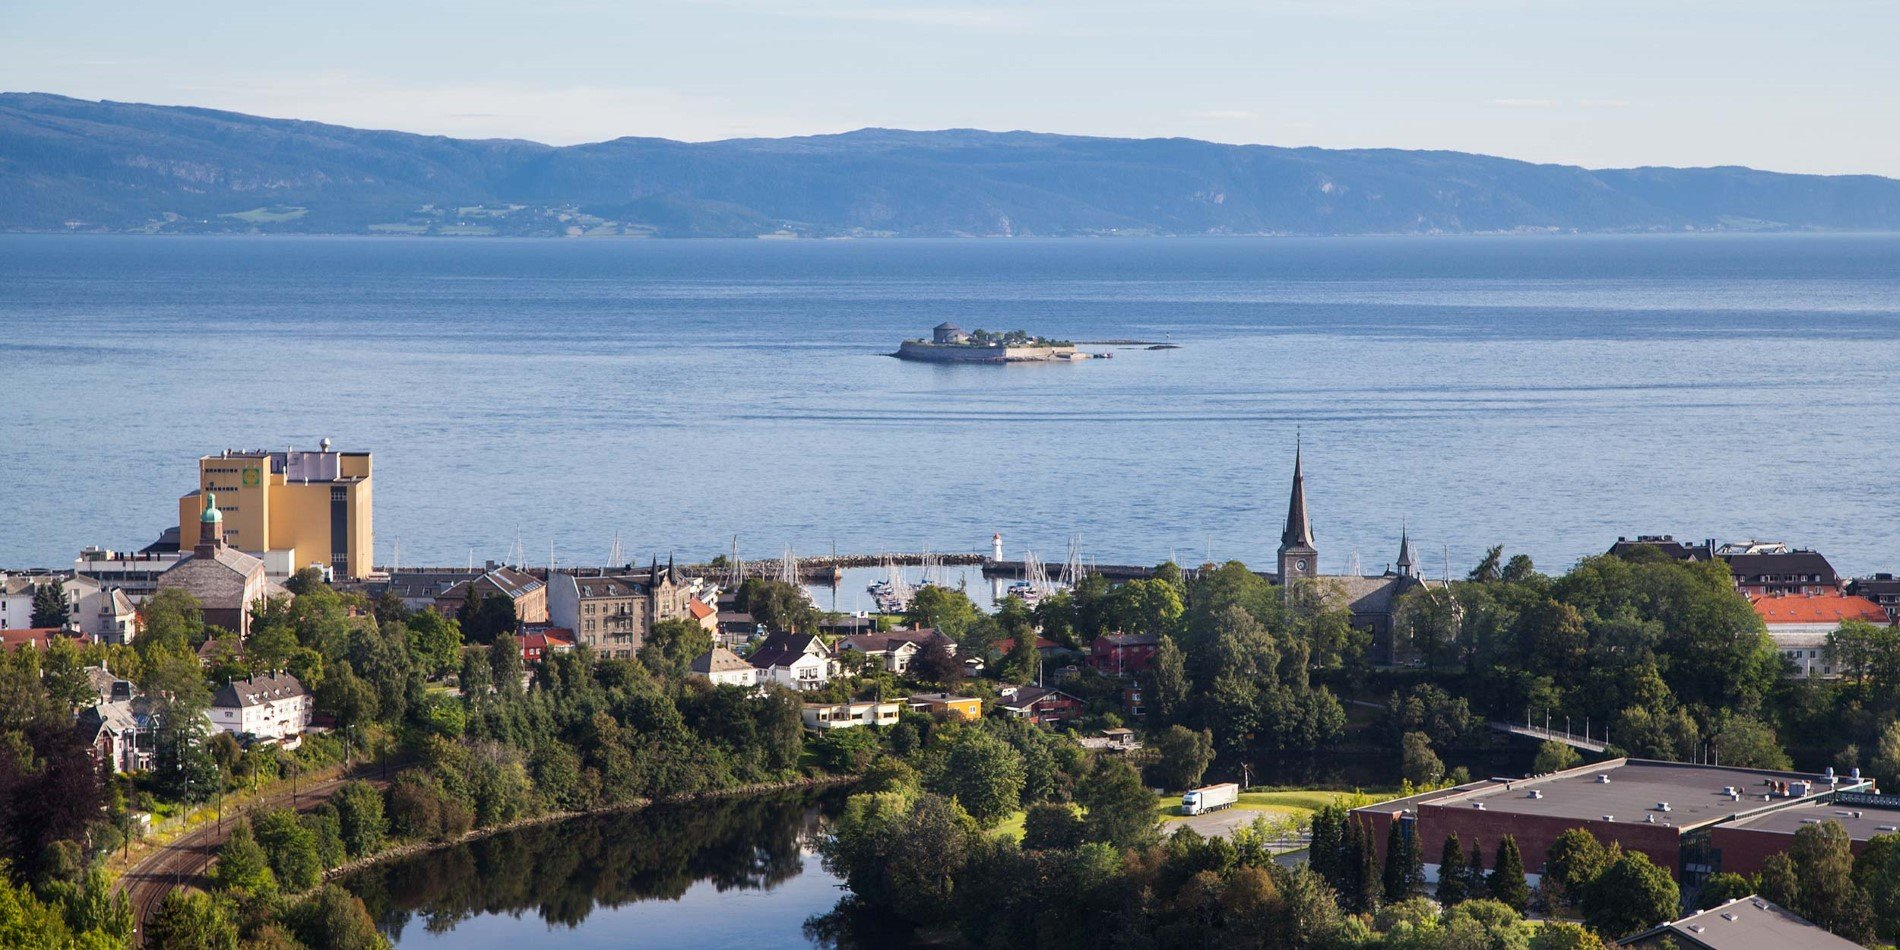 The Trondheimsfjord is Norway's third longest fjord